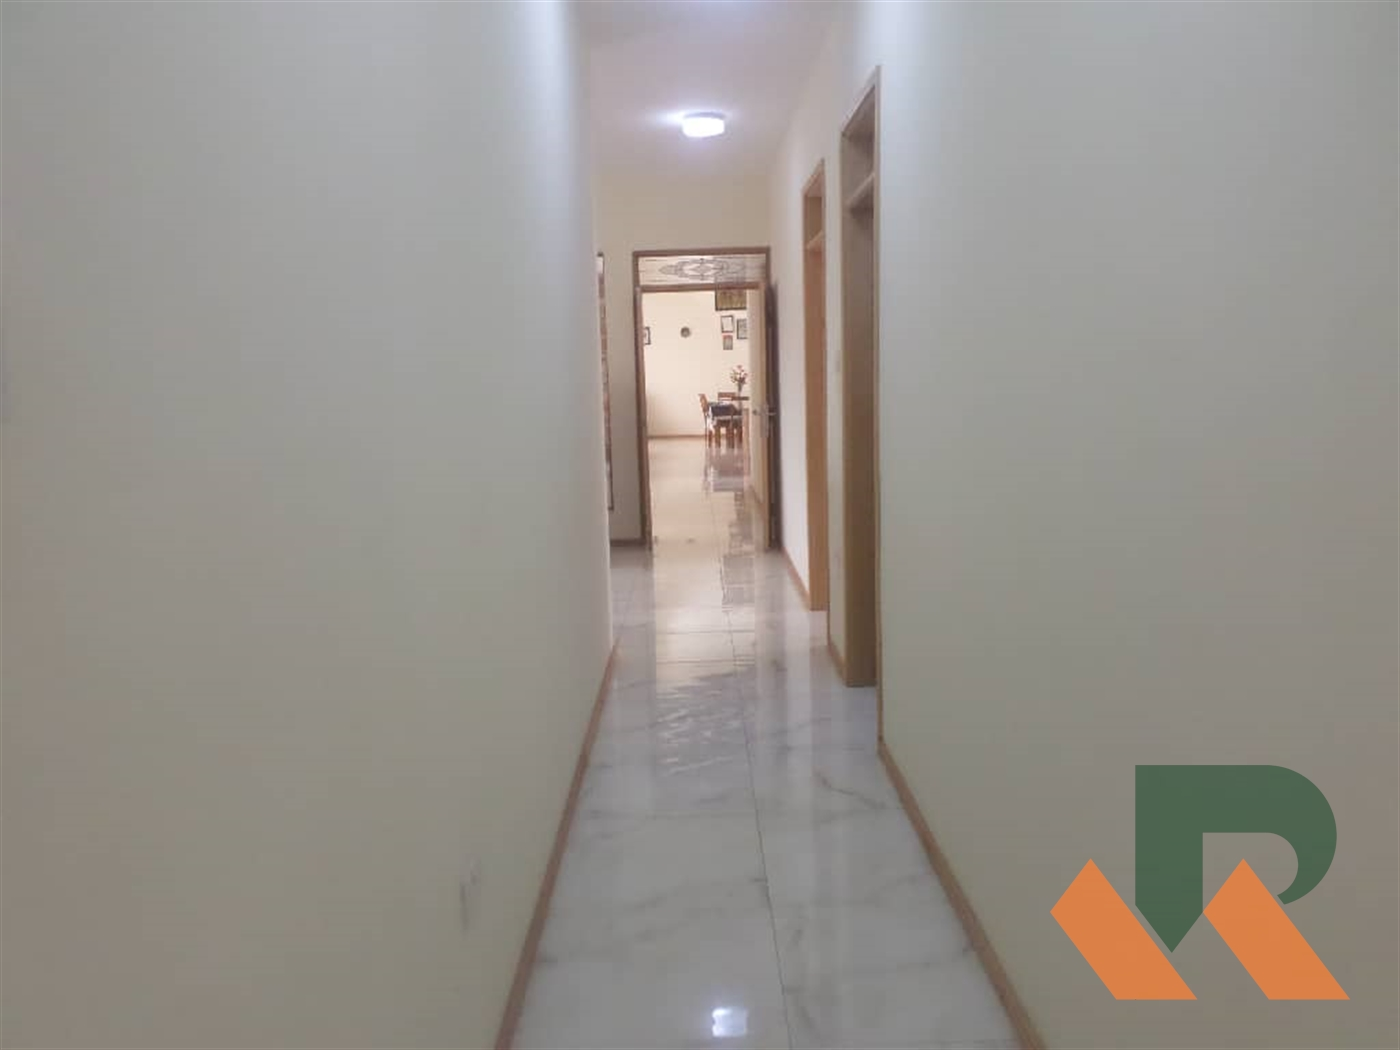 Penthouse for rent in Bukasa Kampala